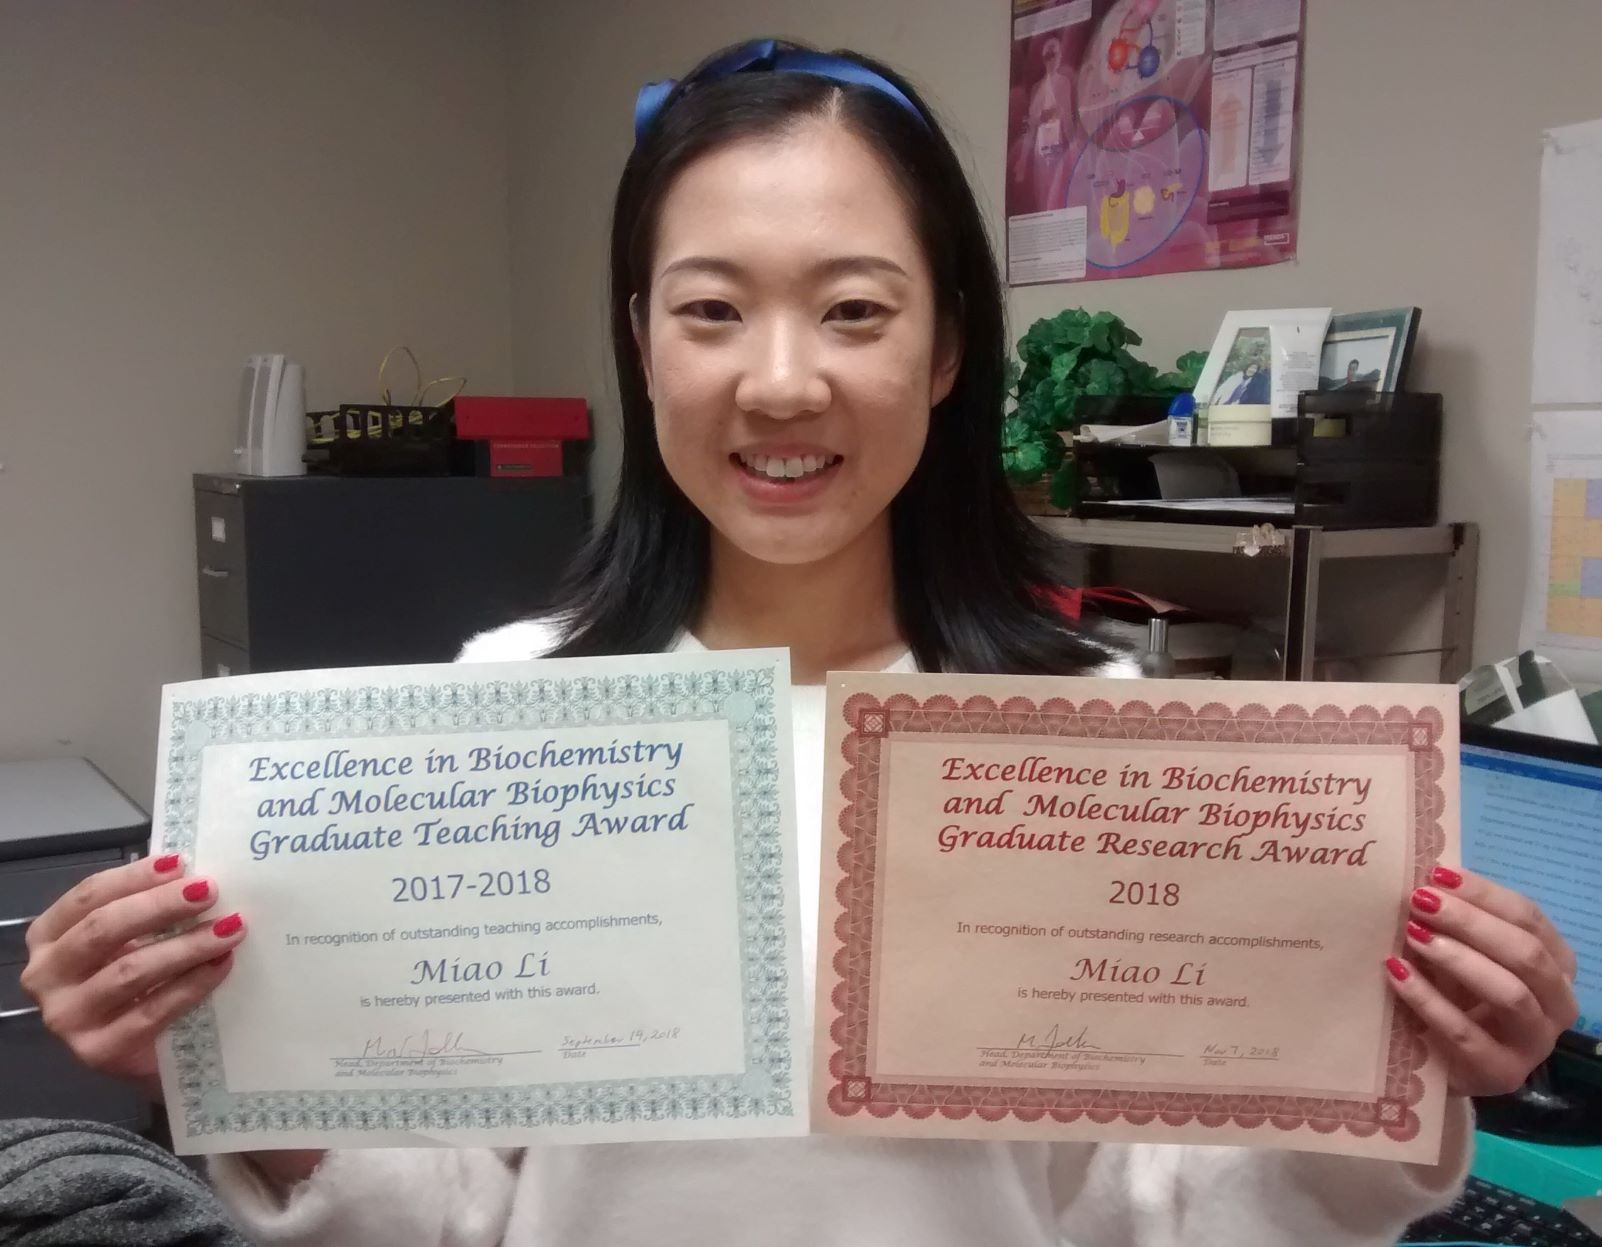 Miao with two awards